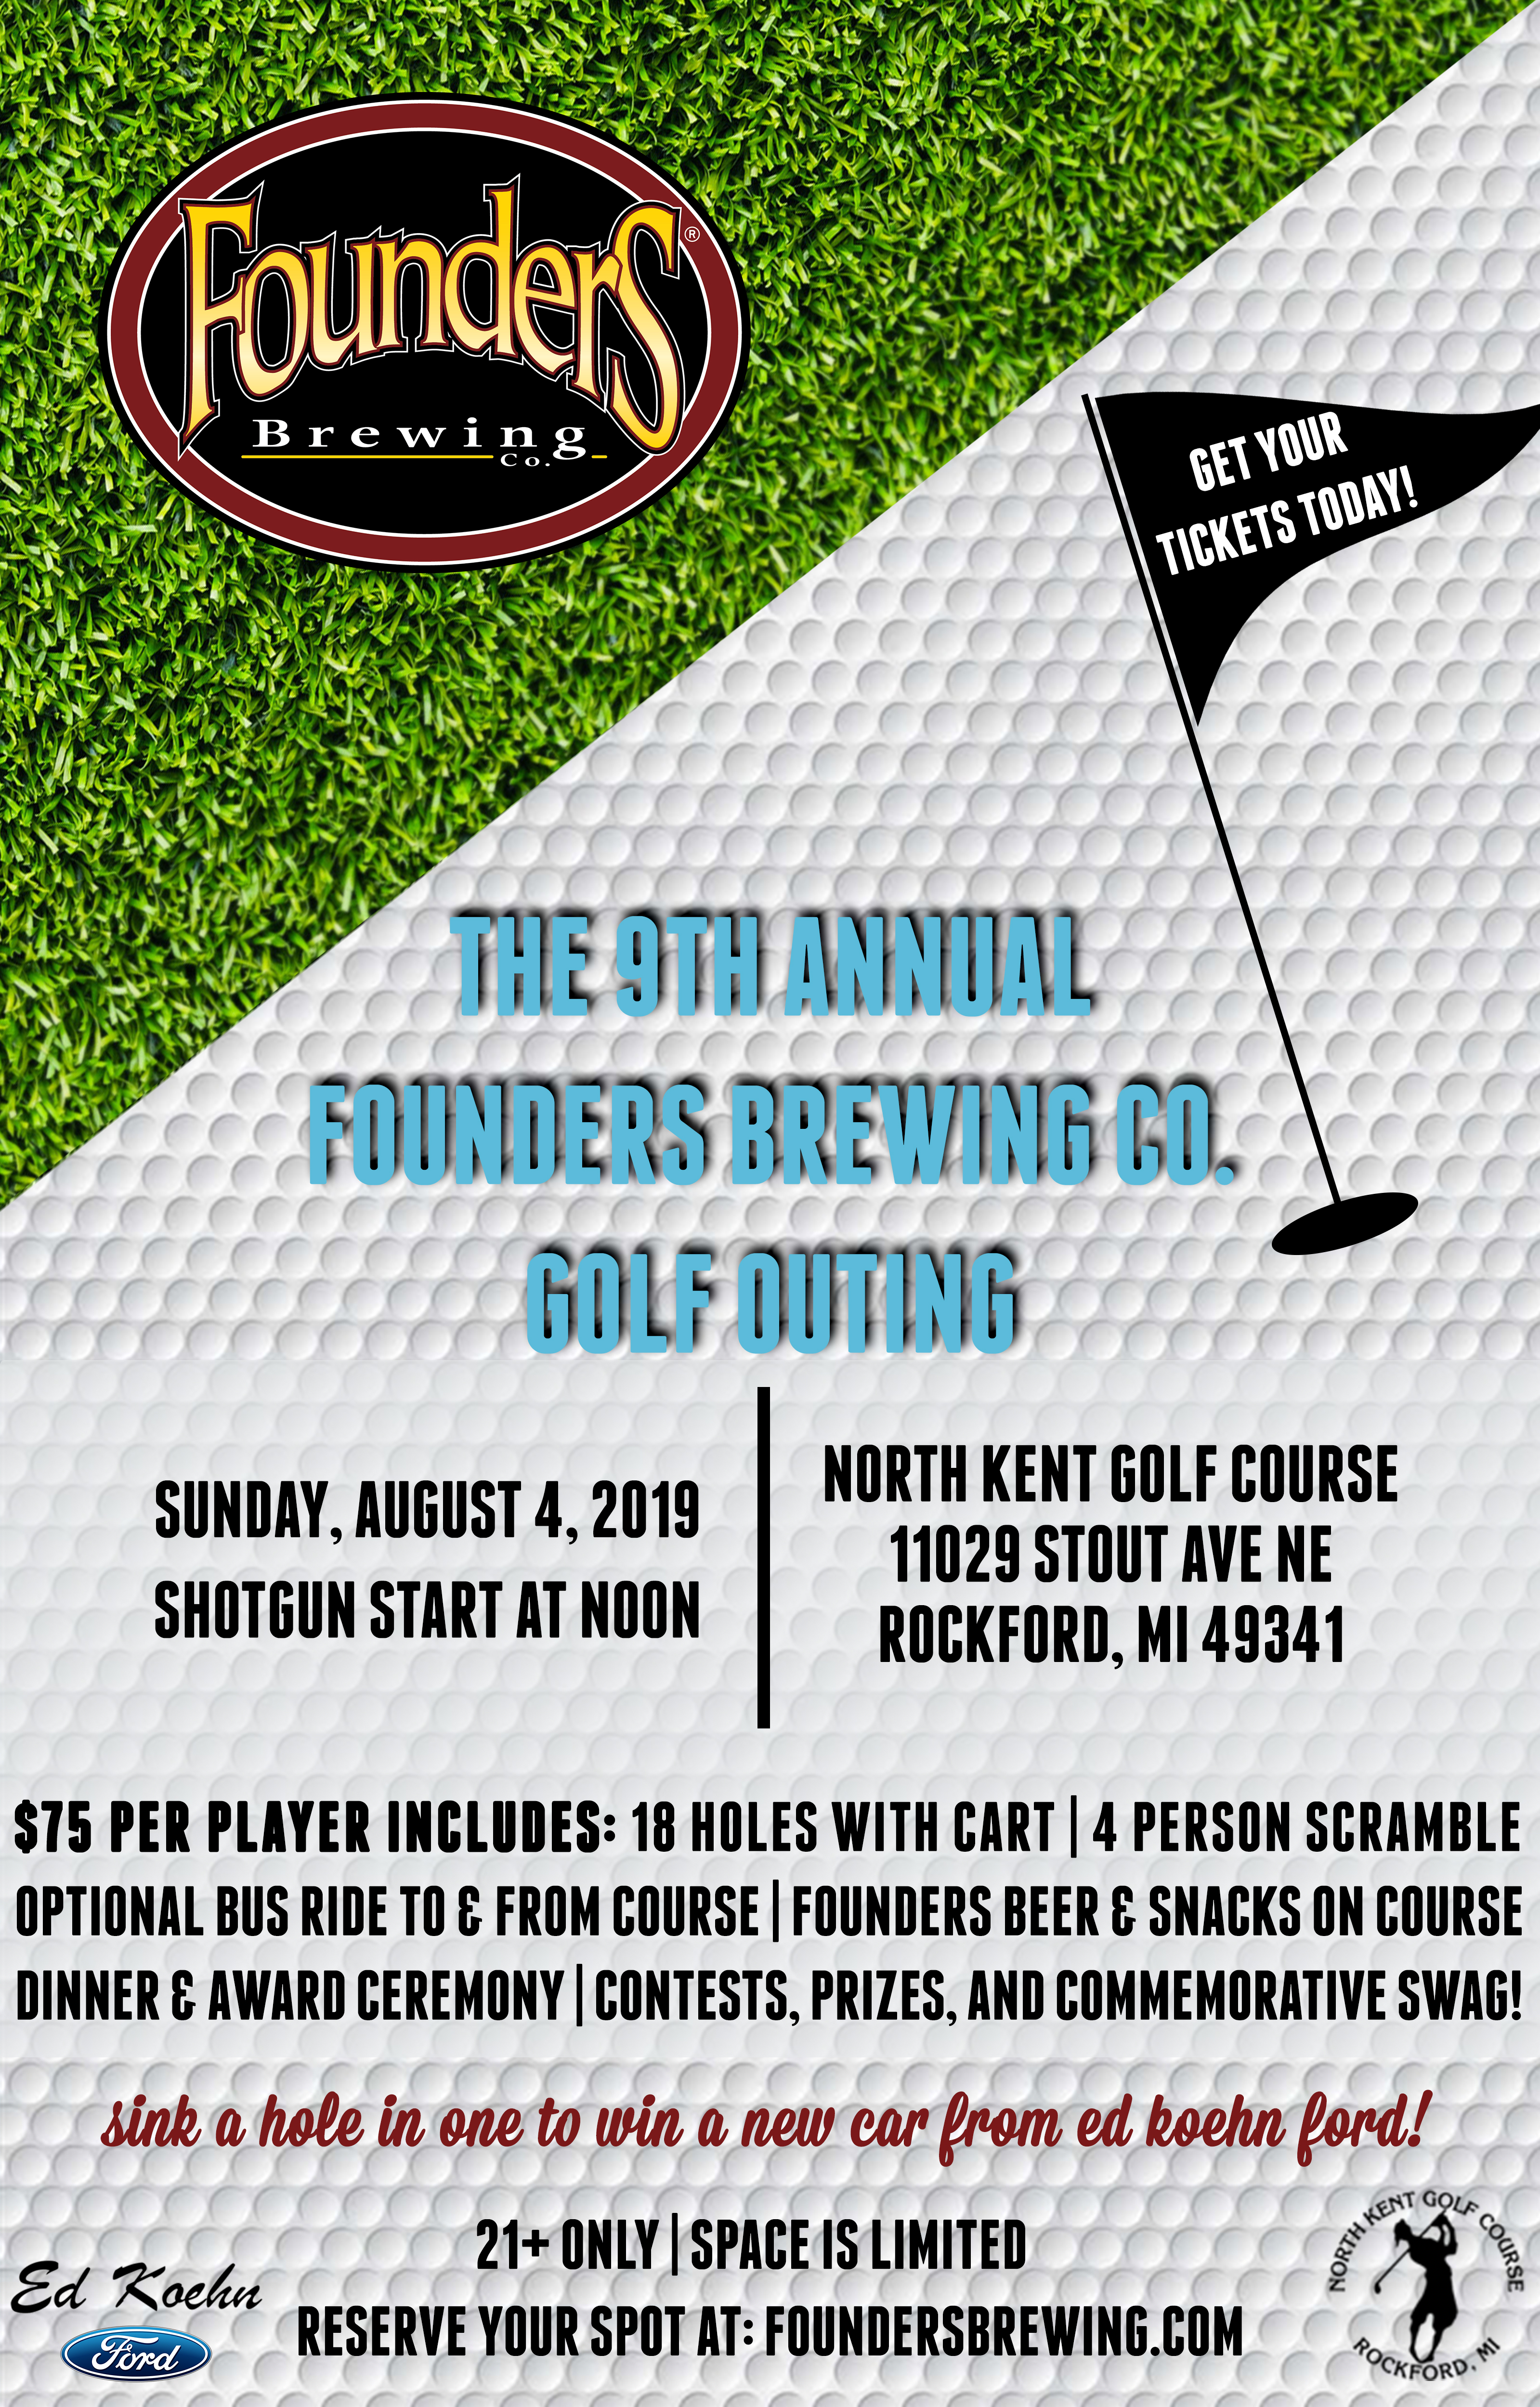 Founders 9th Annual Golf Outing event poster